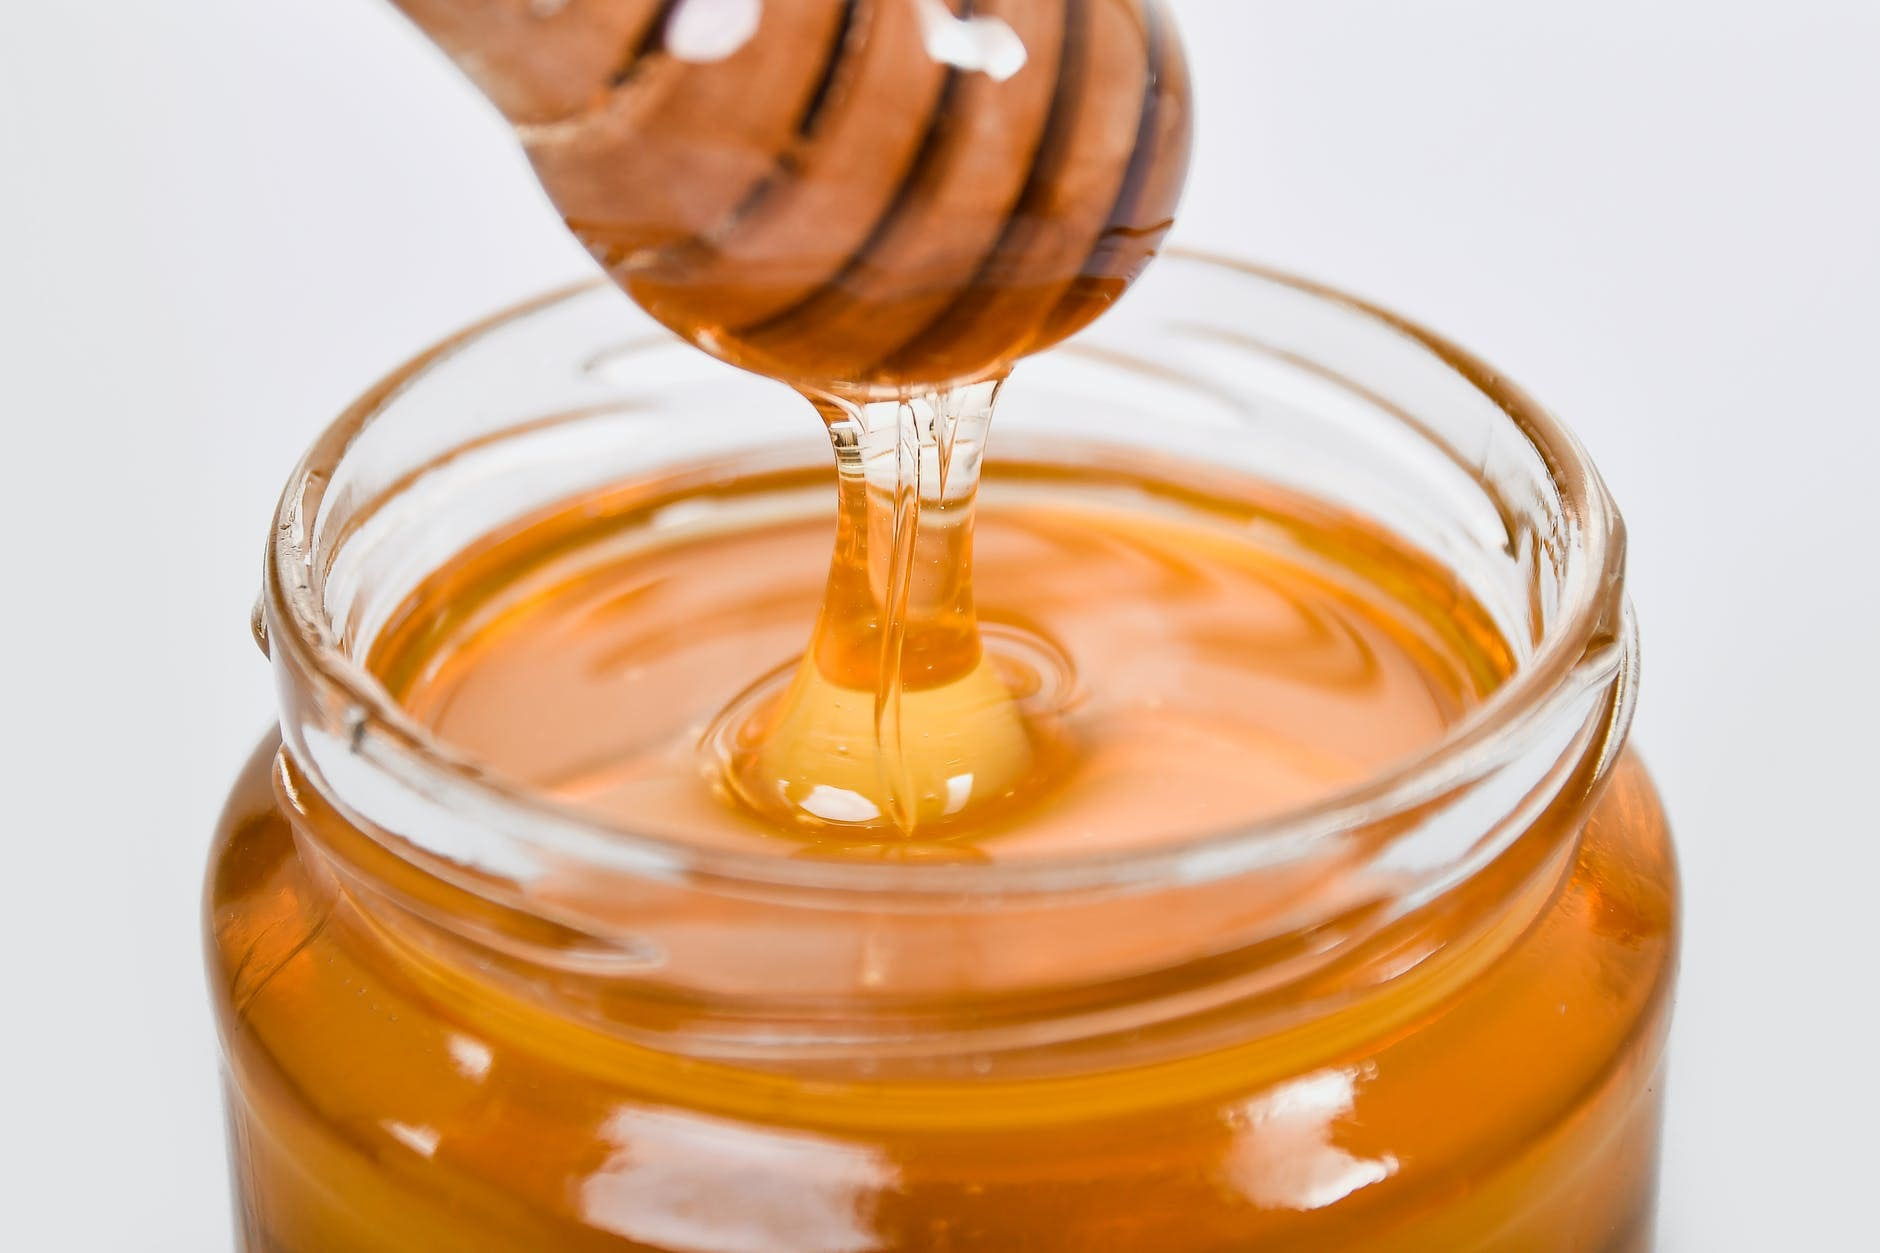 The benefits of eating honey on an empty stomach